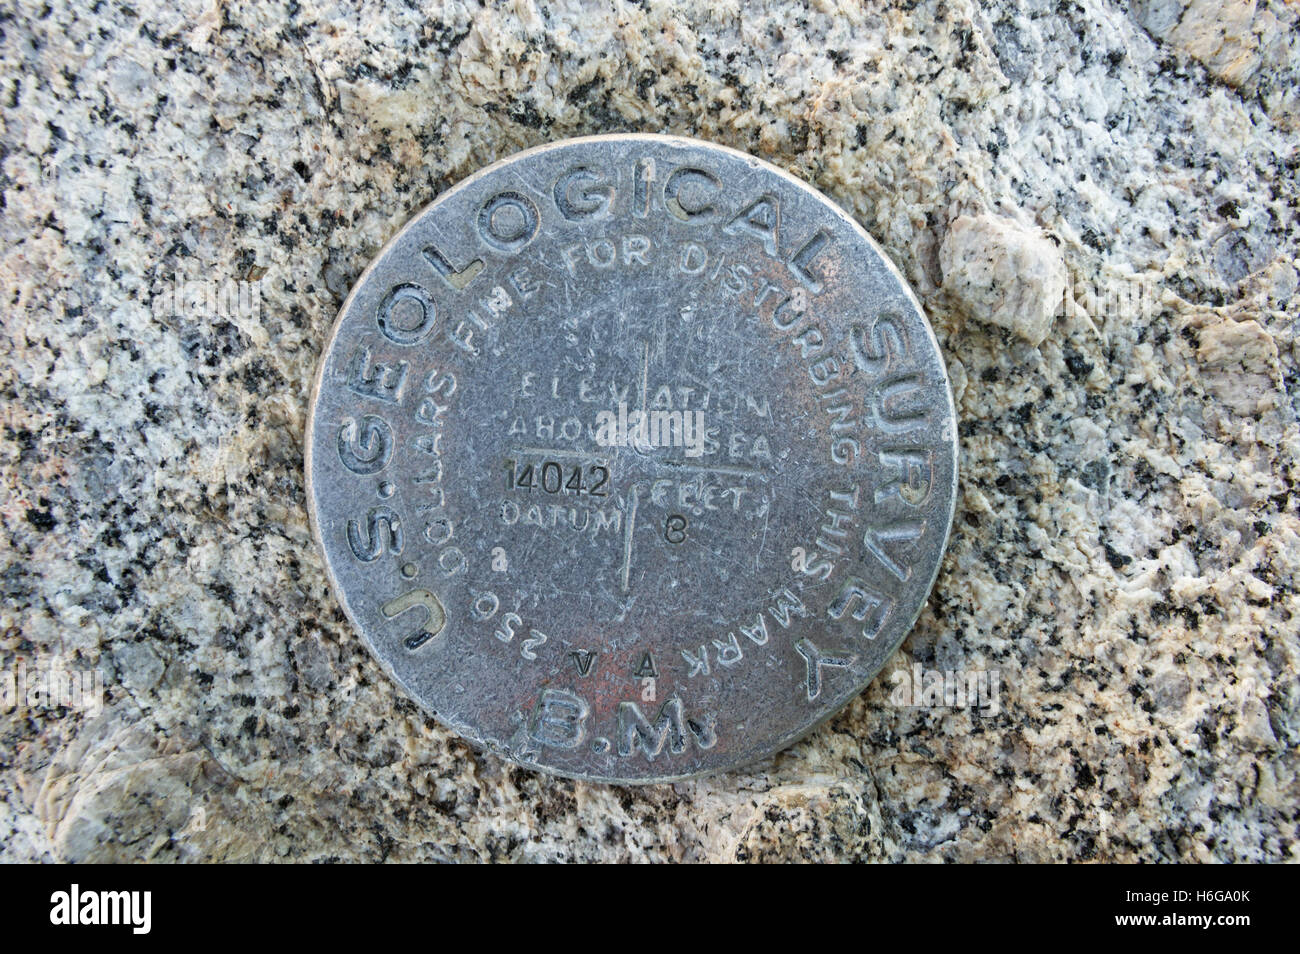 Mount Langley USGS bench mark with elevation 14042 ft marked - Stock Image